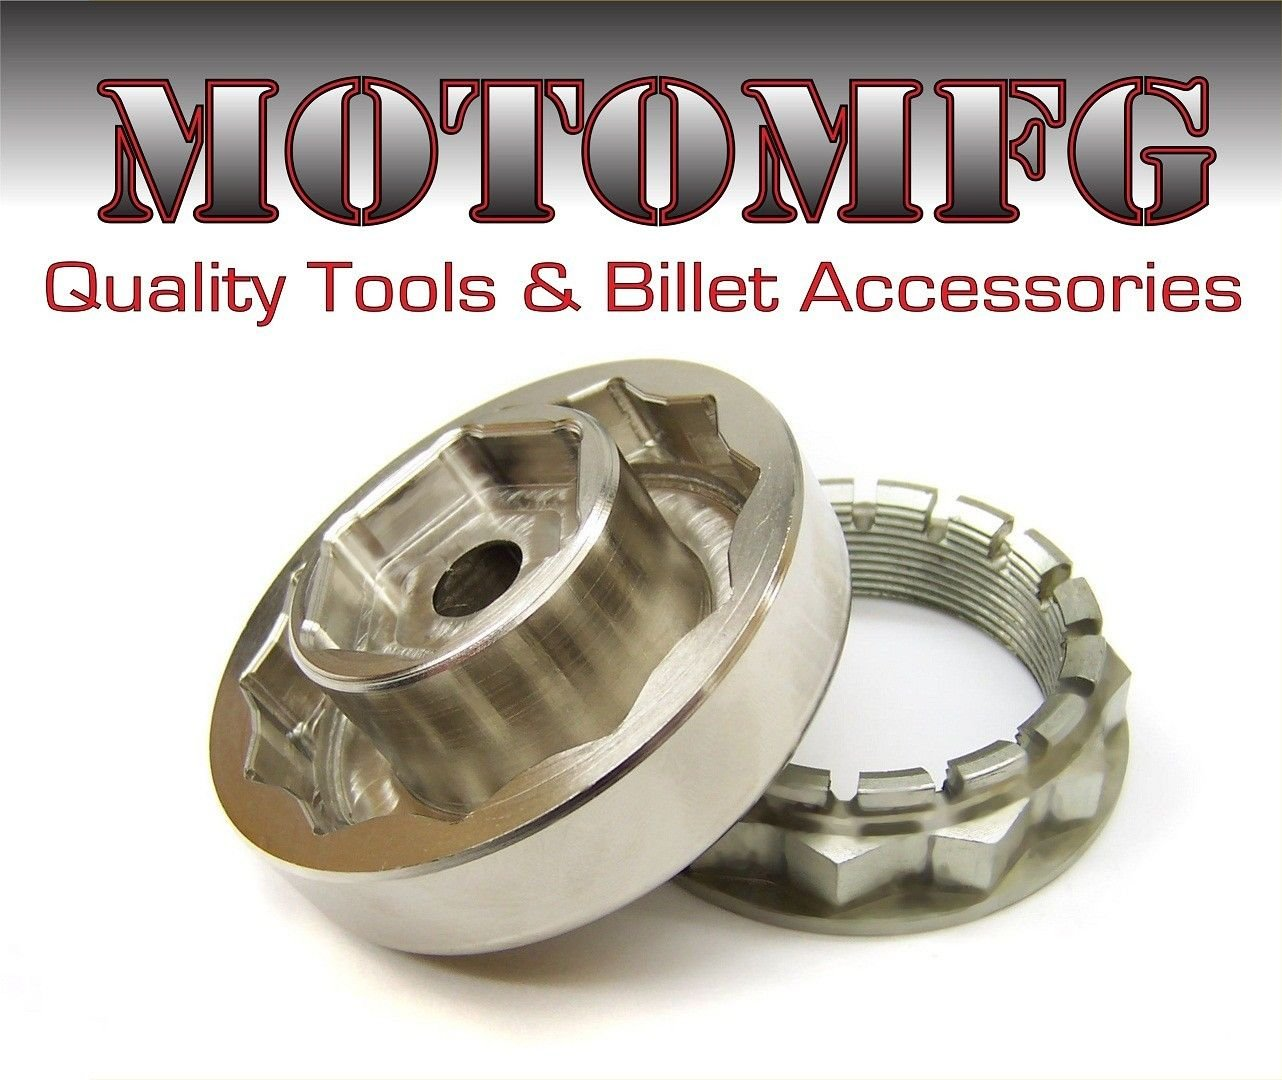 MotoMfg Rear wheel nut socket tool for Ducati 1098//1198//1199 Streetfighter Multistrada 1200